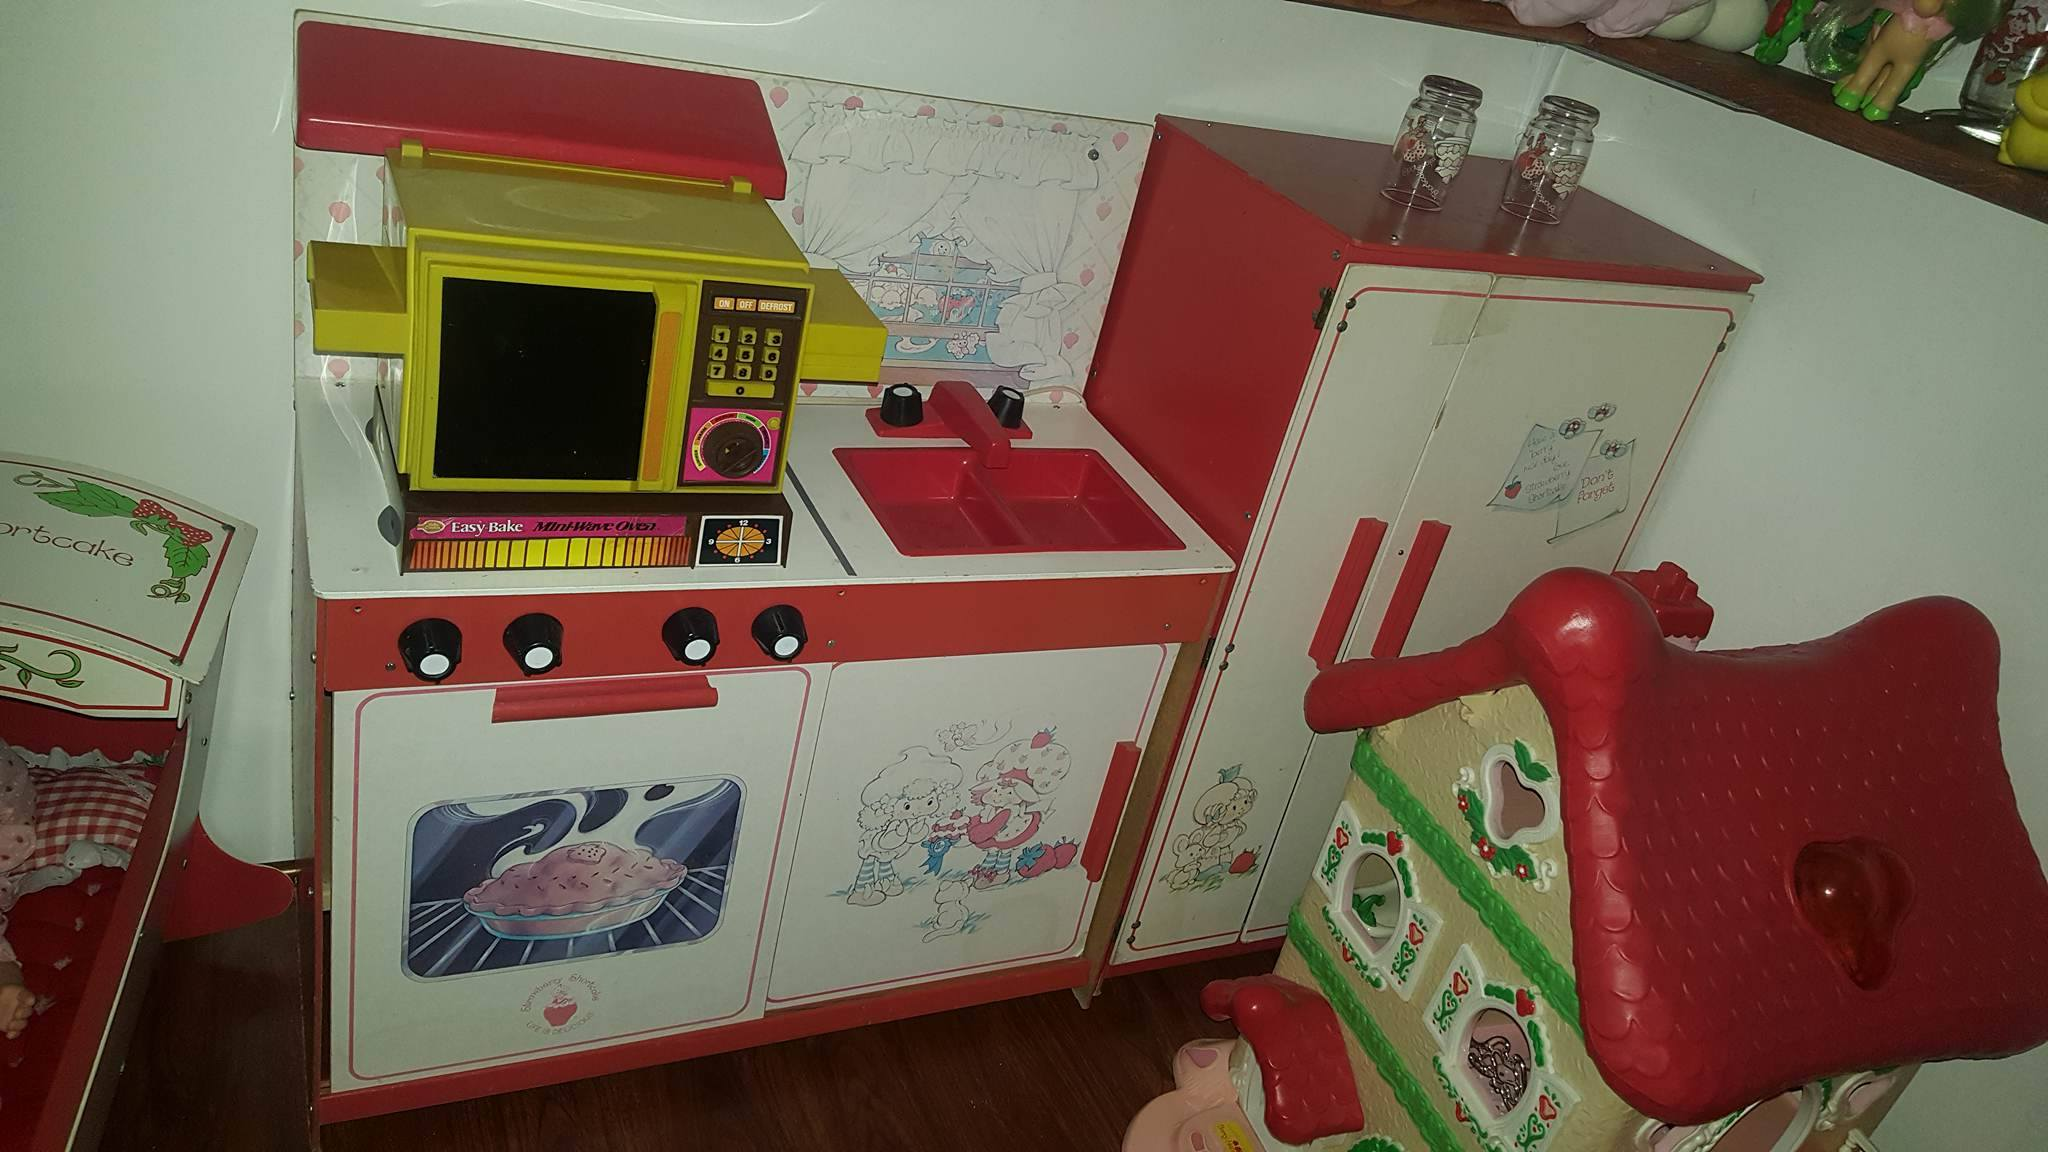 Strawberry Shortcake Kitchen with an Easy Bake Oven!